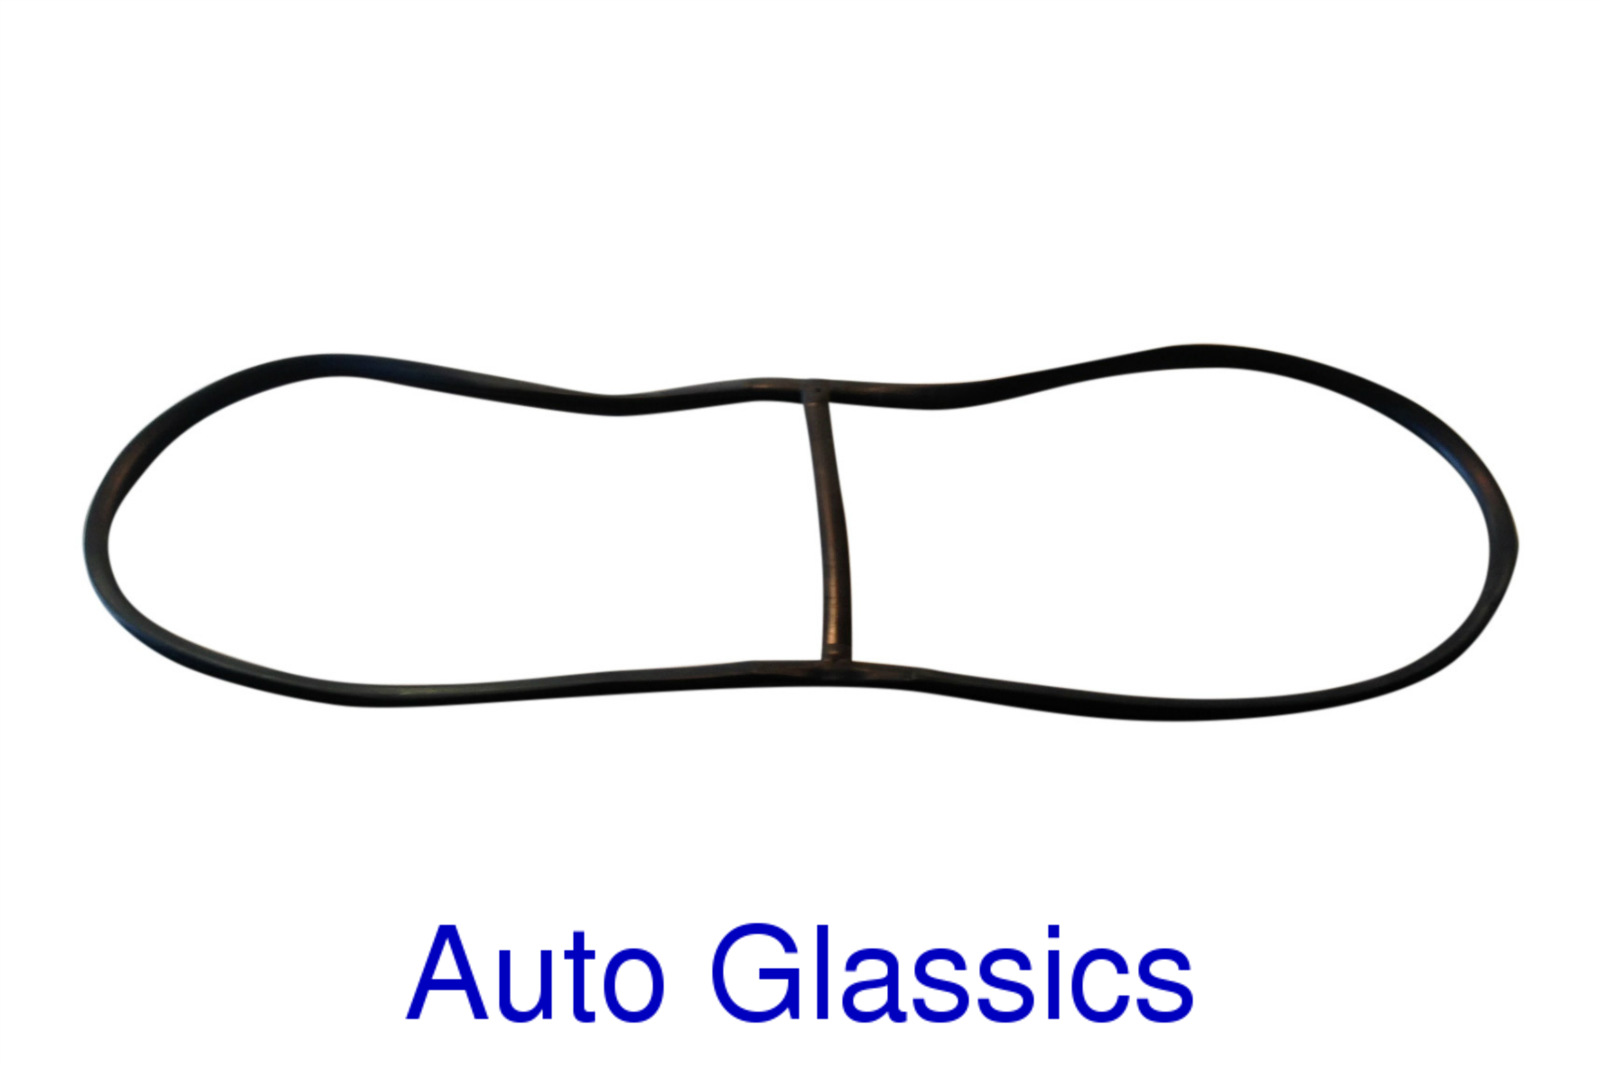 1948 1949 1950 1951 1952 1953 dodge b series pickup panel windshield gasket new  auto glassics